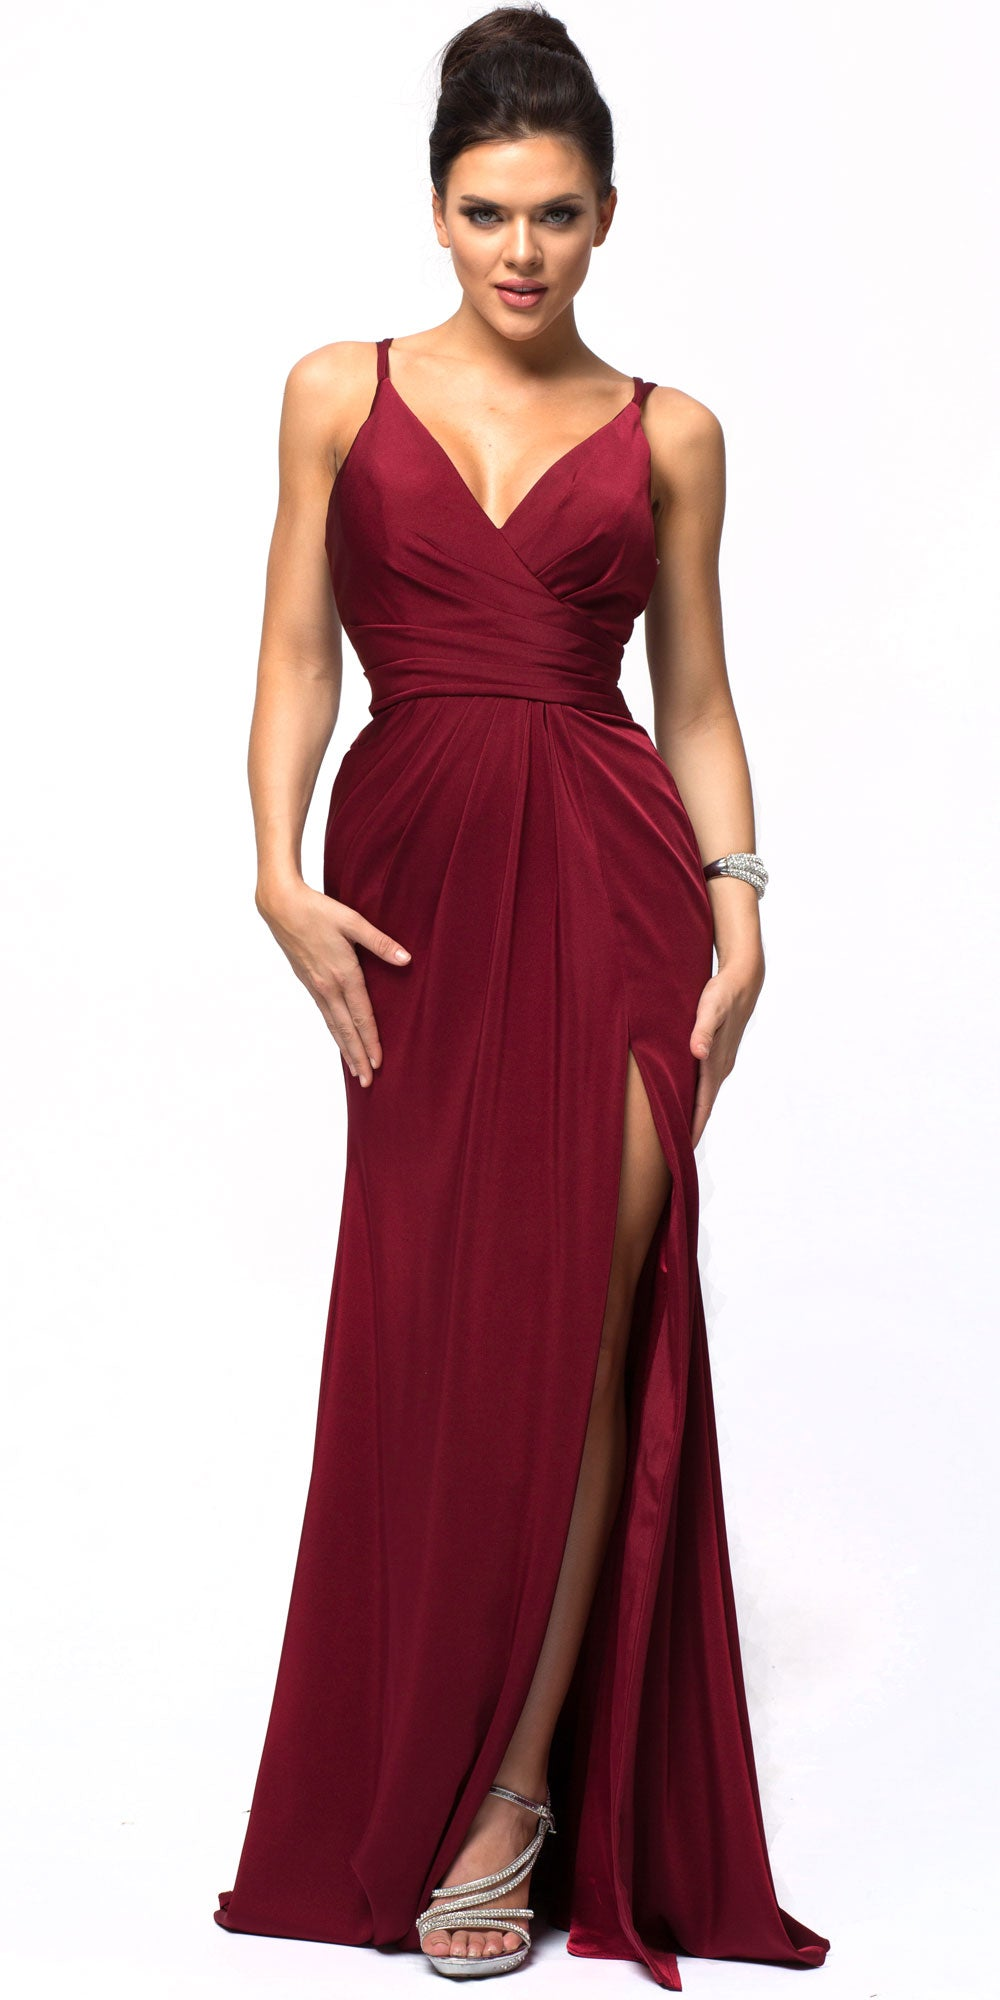 Image of Double Spaghetti Straps Overlay Bodice Long Bridesmaid Dress in Burgundy